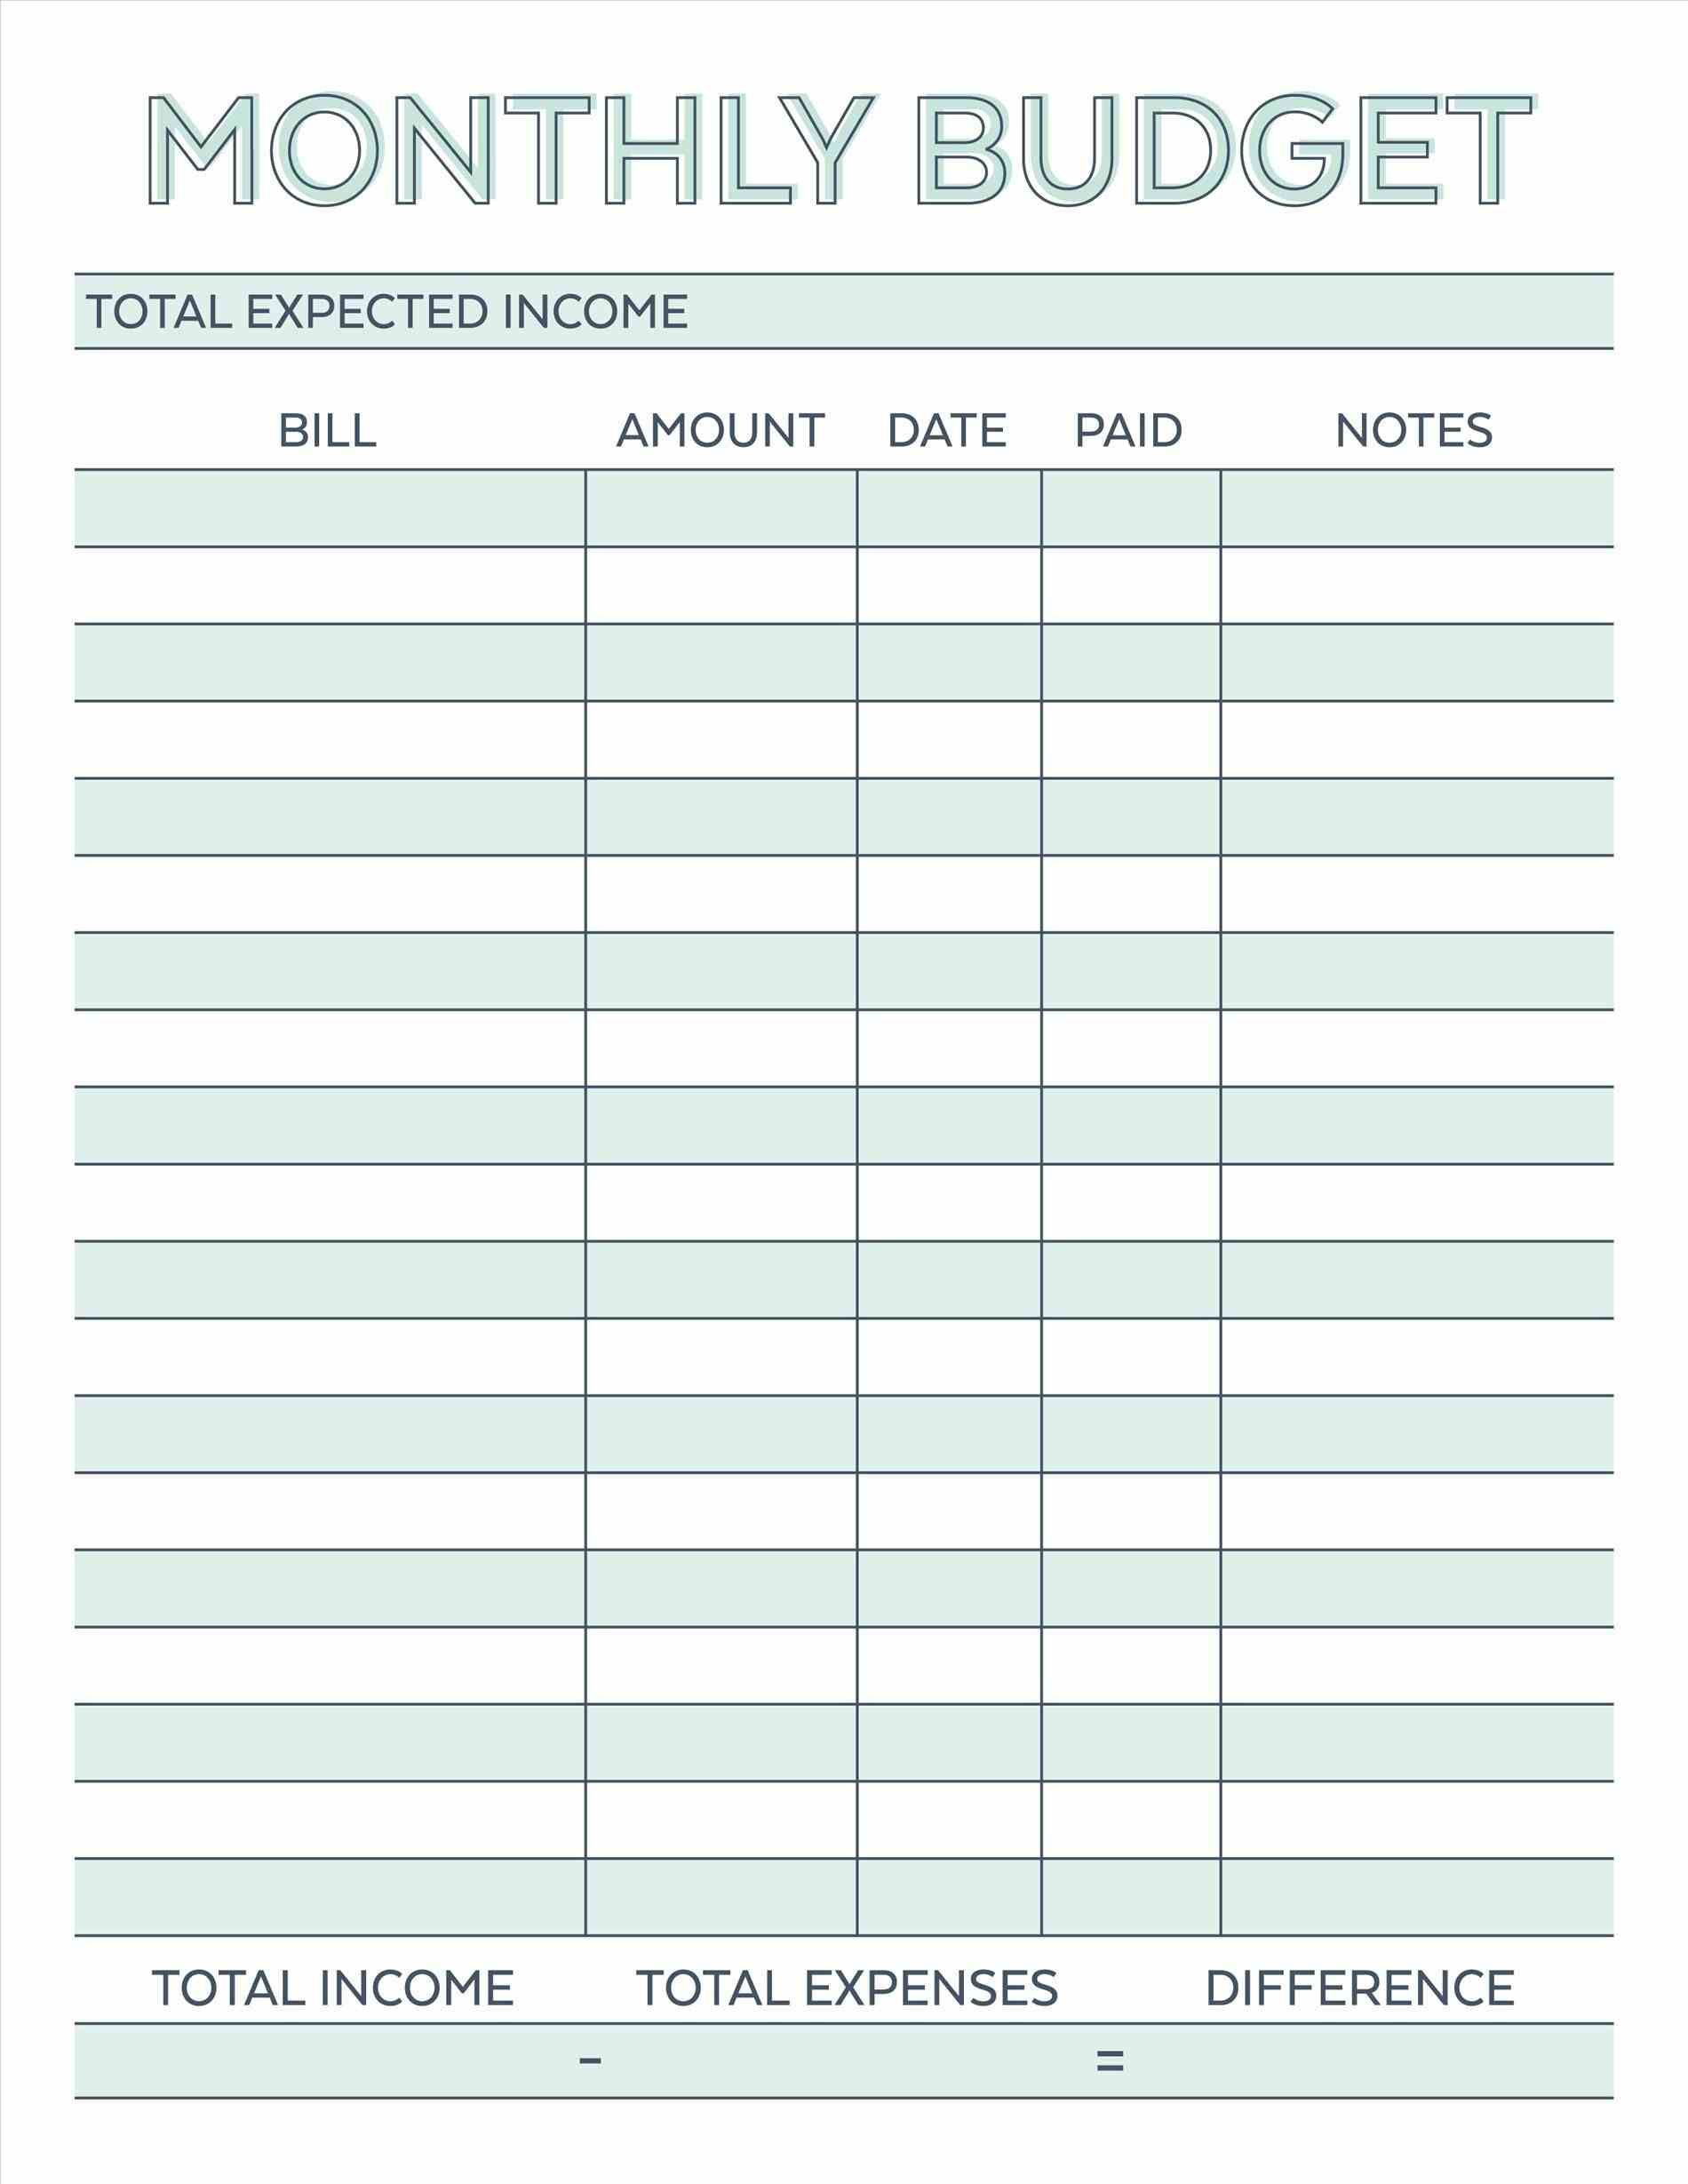 Budget Planner Planner Worksheet Monthly Bills Template Free - Free Printable Monthly Bills Worksheet